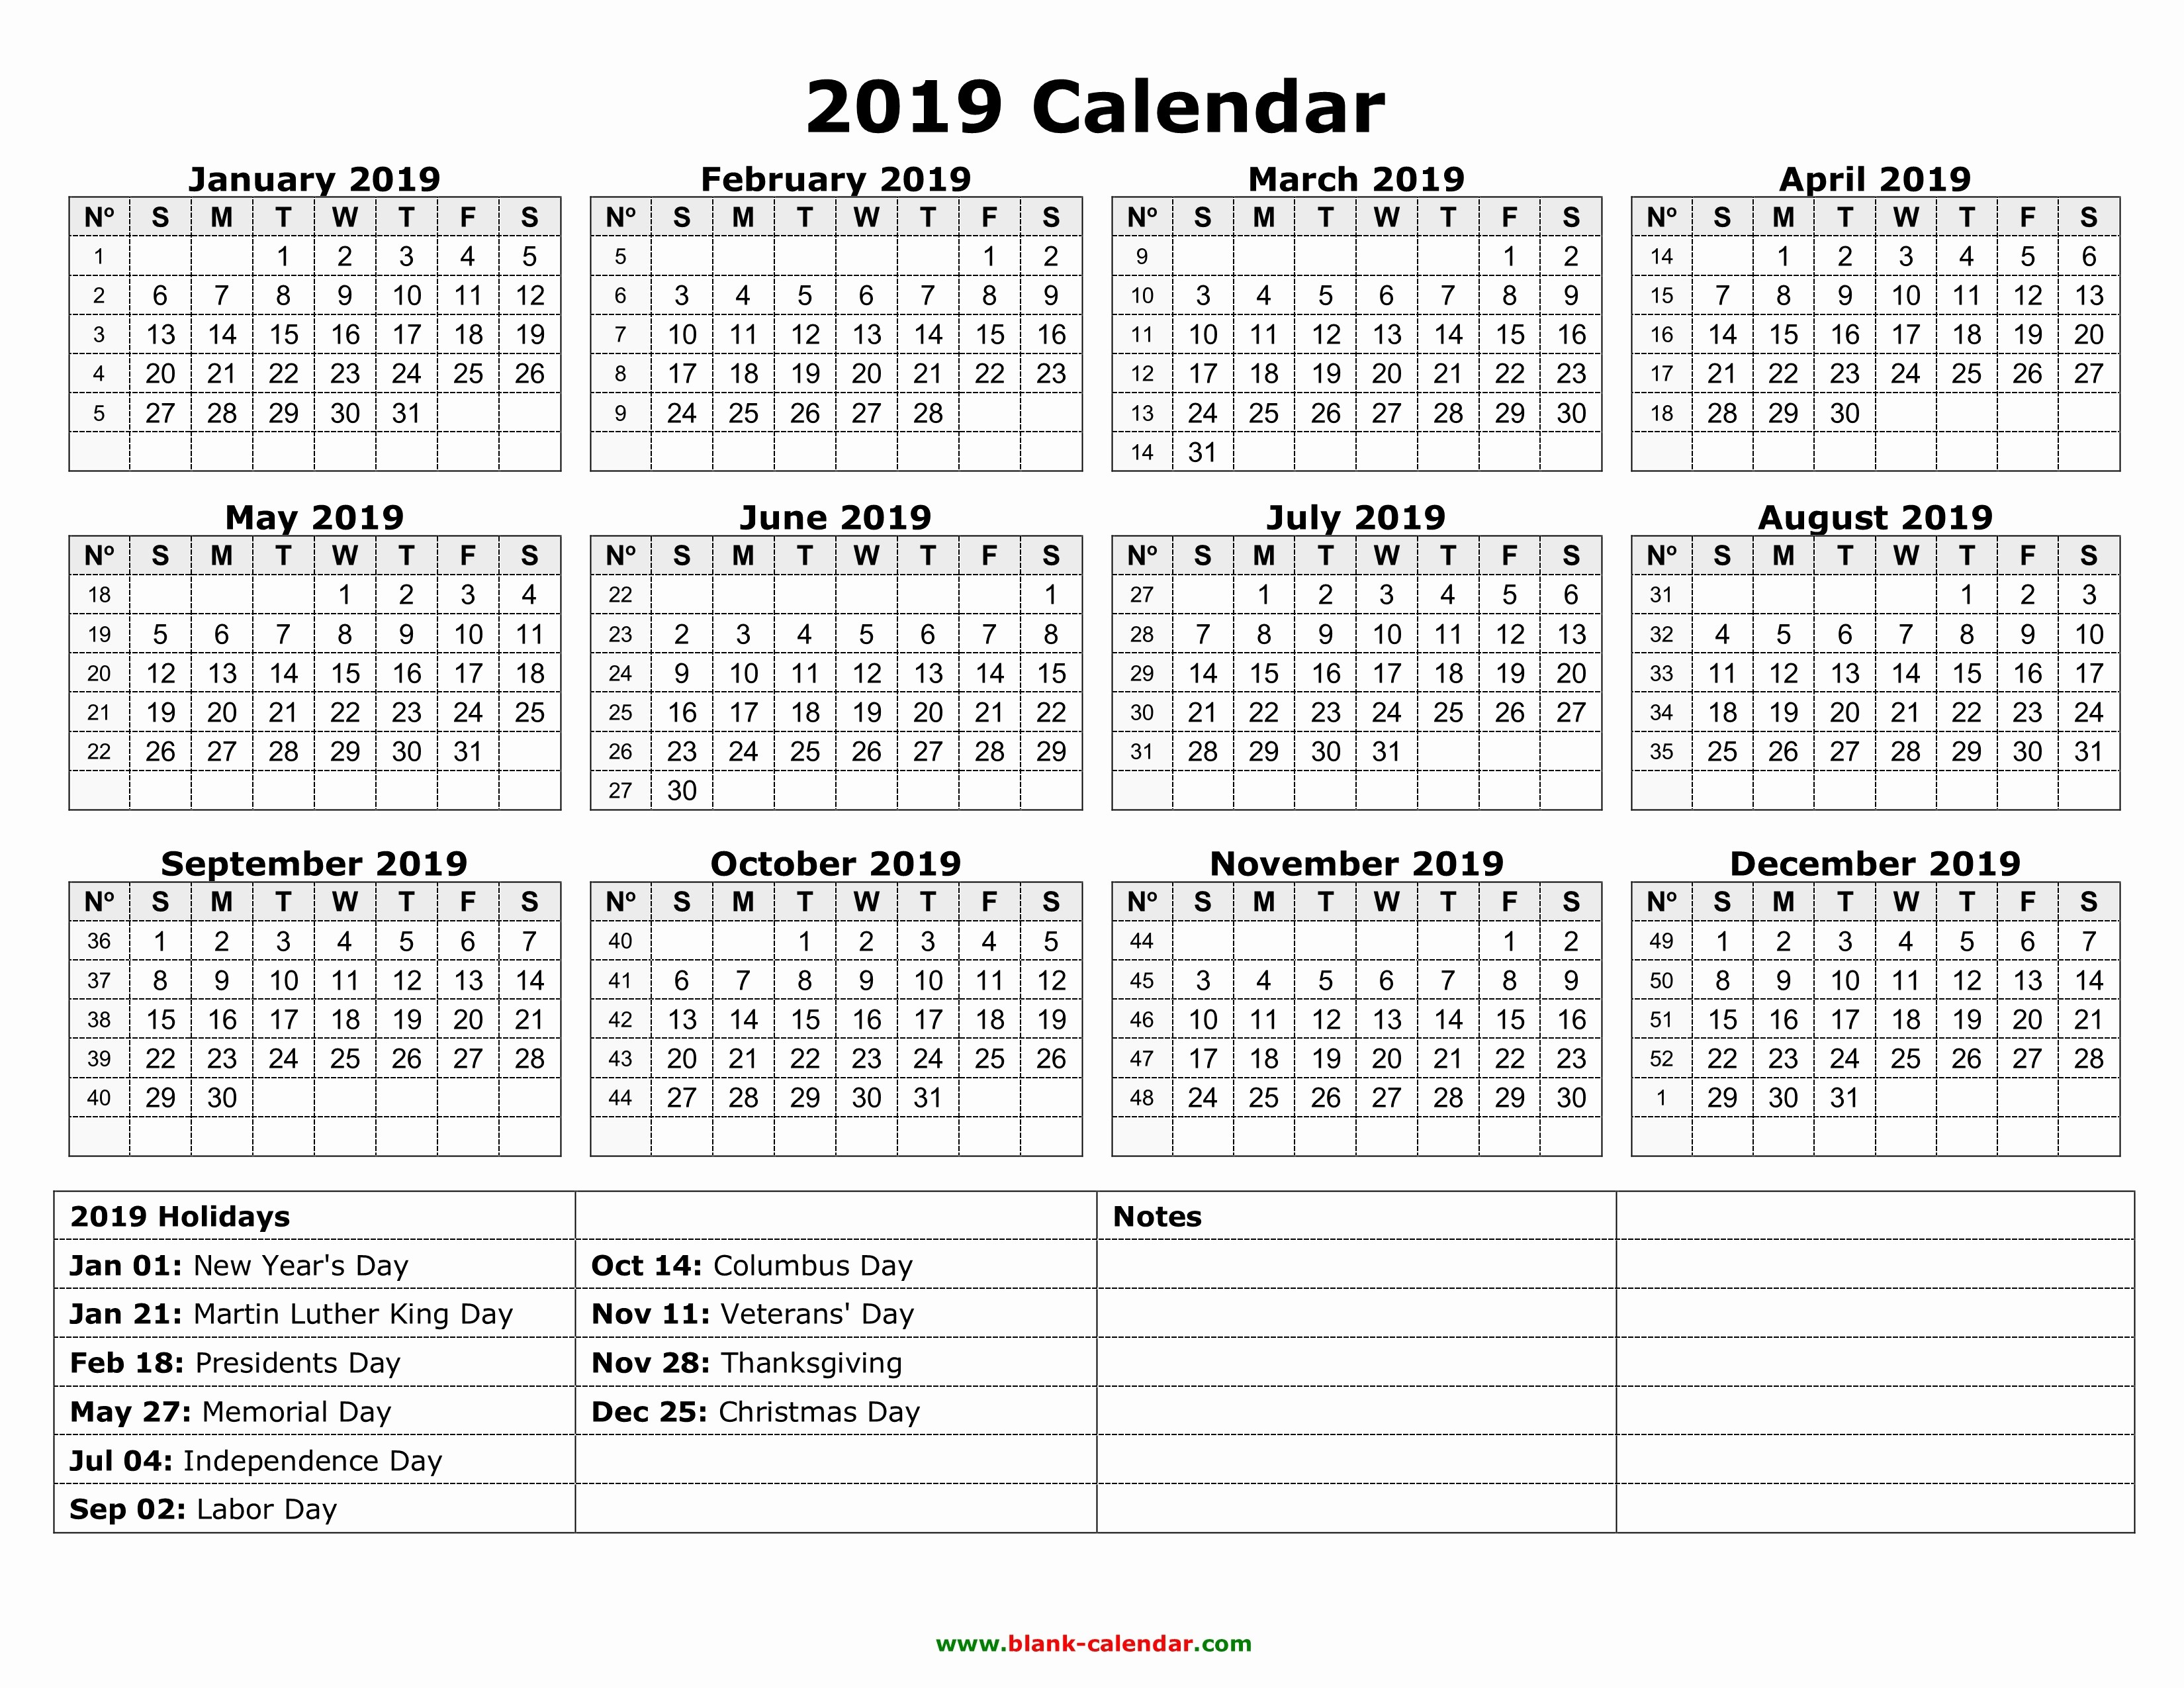 2019 Yearly Calendar with Holidays Luxury New 2019 Calendar with Federal Holidays Printable